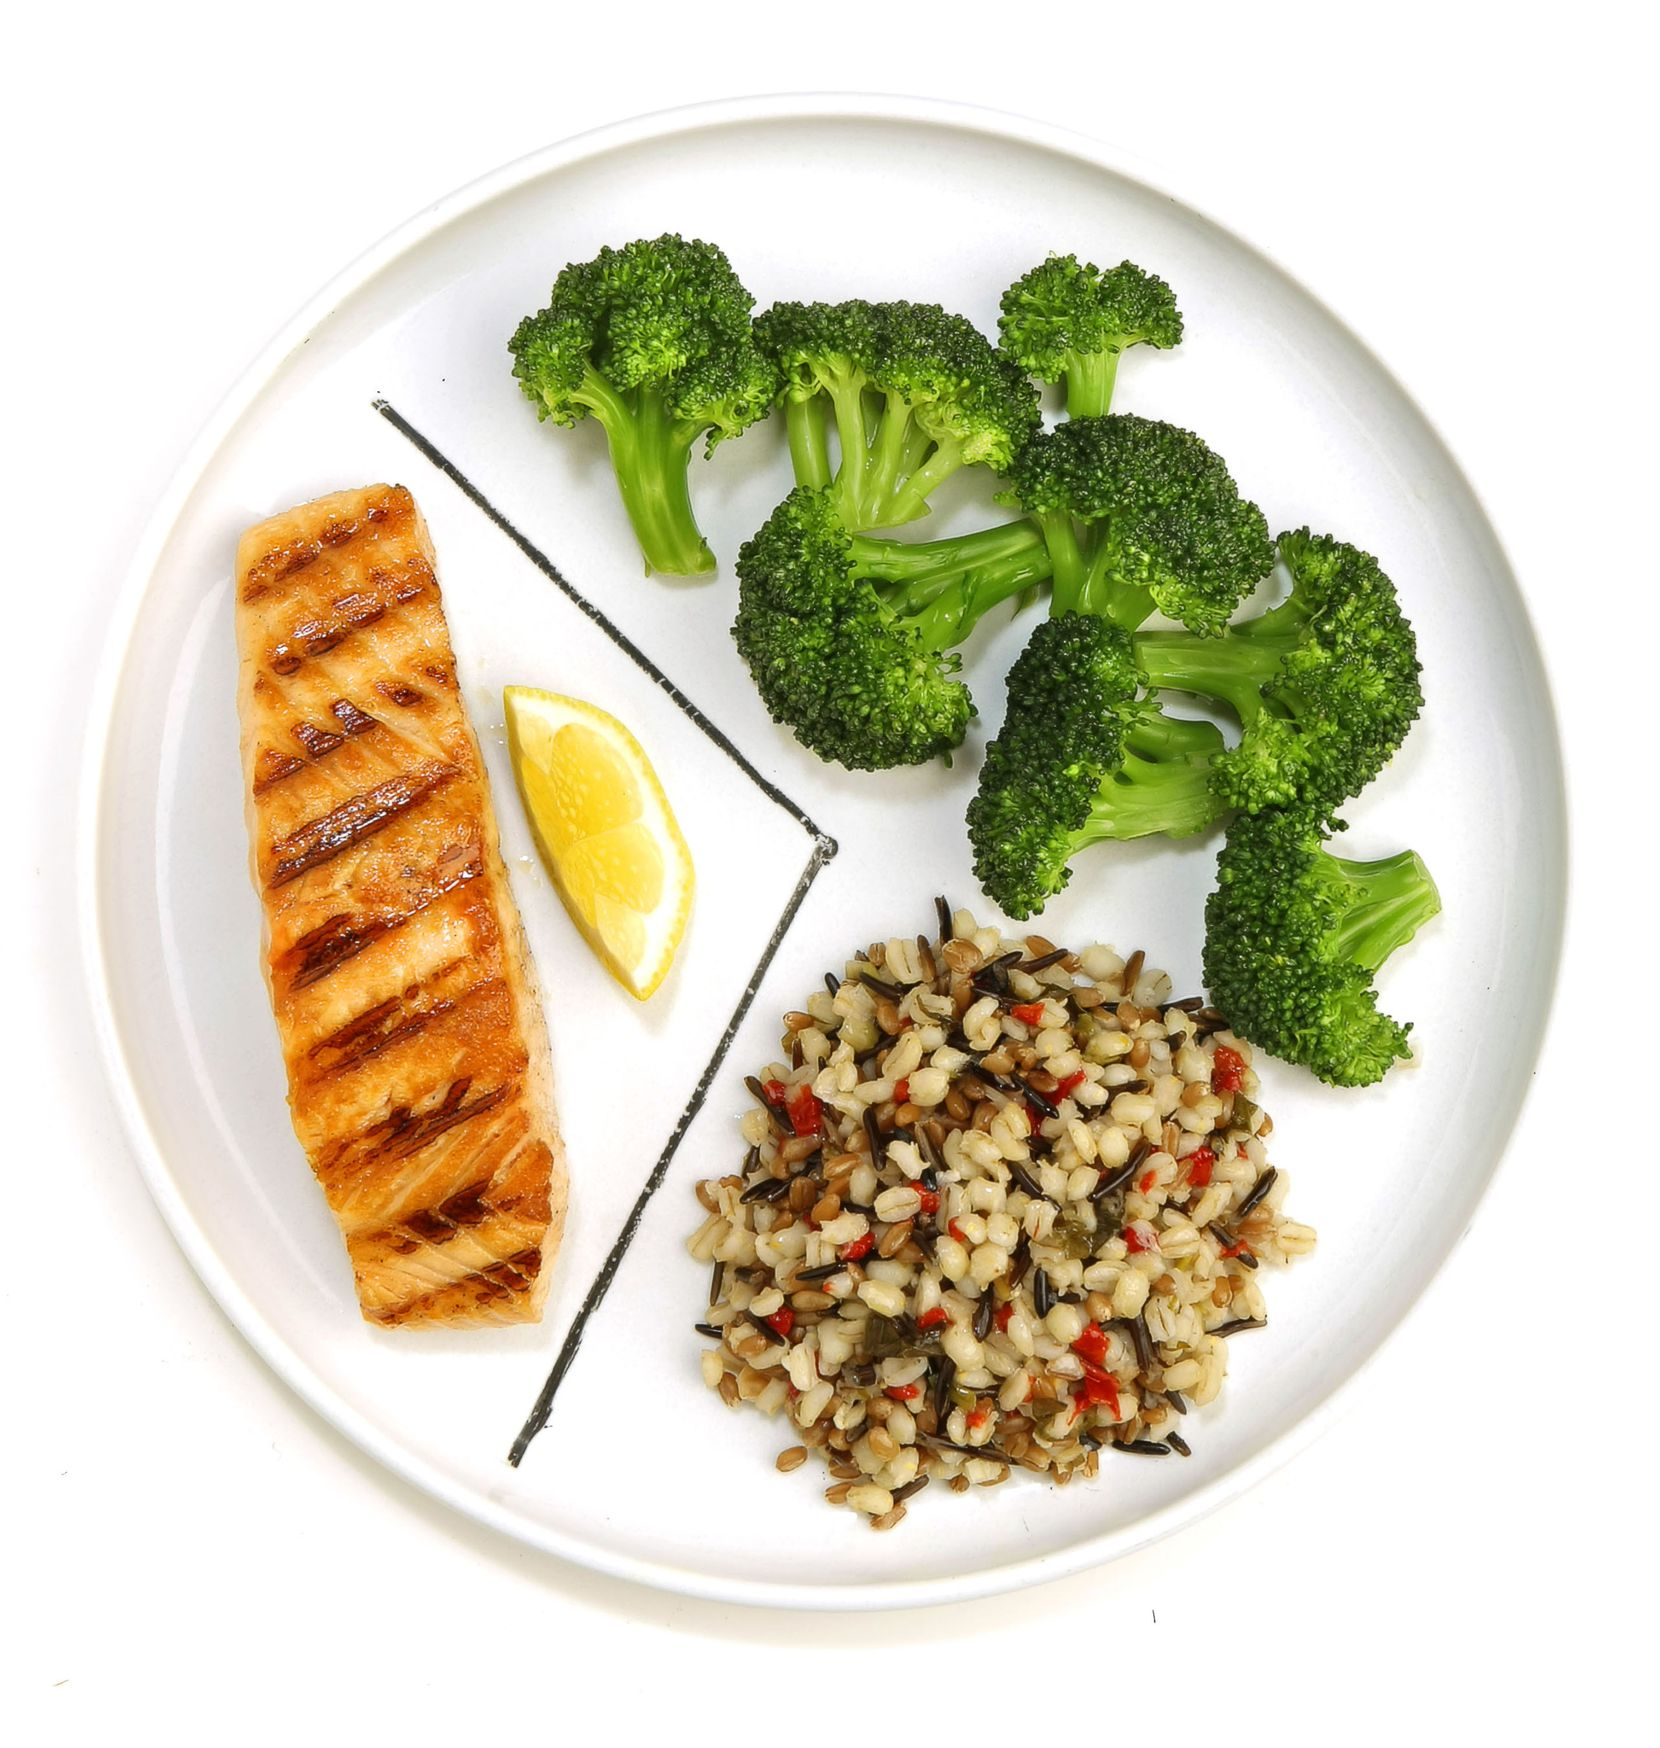 Salmon and other fatty fish are rich in omega-3 fatty acids that help decrease inflammation and may lower your risk of heart disease and certain cancers, including breast and prostate cancer. Broccoli and other dark green vegetables offer carotenoids, folate and vitamin C. Carotenoids may be powerful weapons against cancer. You can potentially reduce your risk of diabetes, heart disease, stroke and certain cancers by simply replacing refined grains with whole grains, which are higher in fiber and other disease-fighting nutrients.